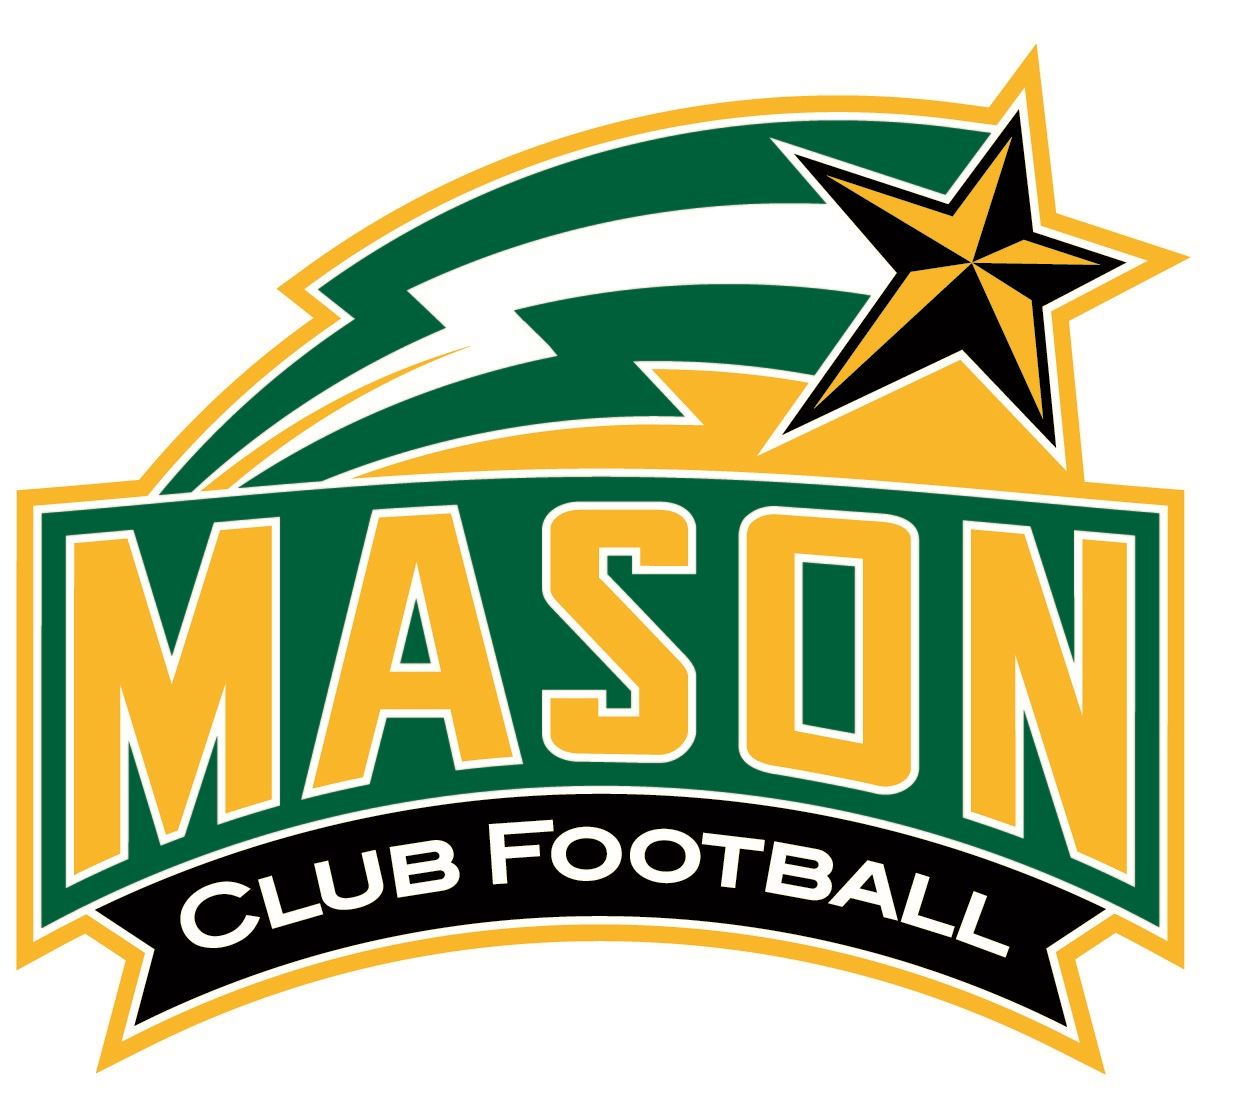 George Mason Club Football - George Mason Club Football